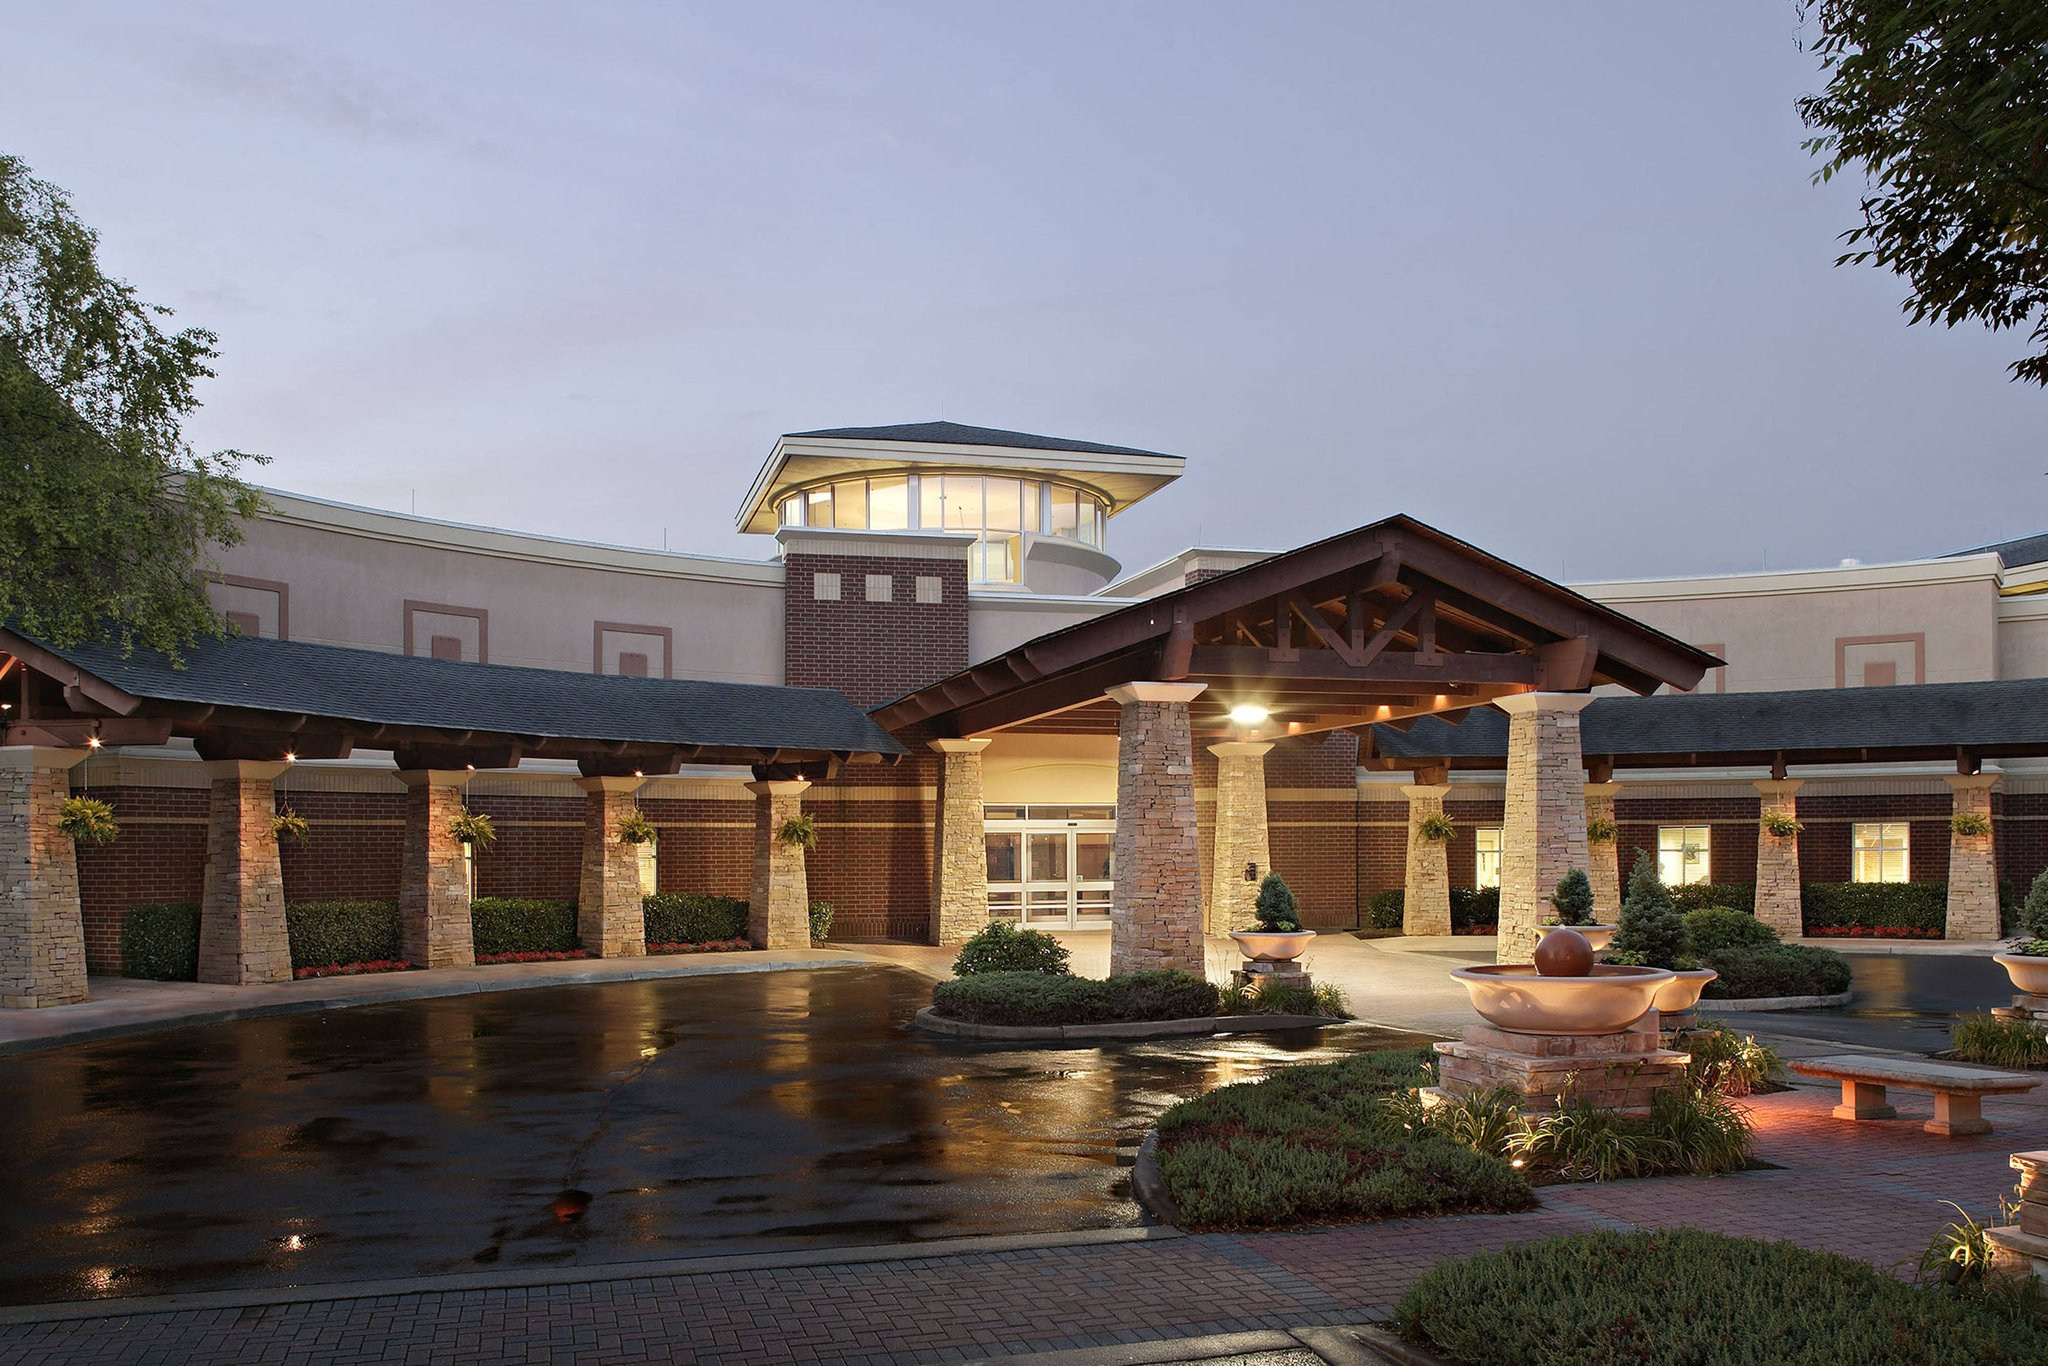 Meetings And Events At Meadowview Conference Resort Regarding Meadowview Convention Center Events Calendar